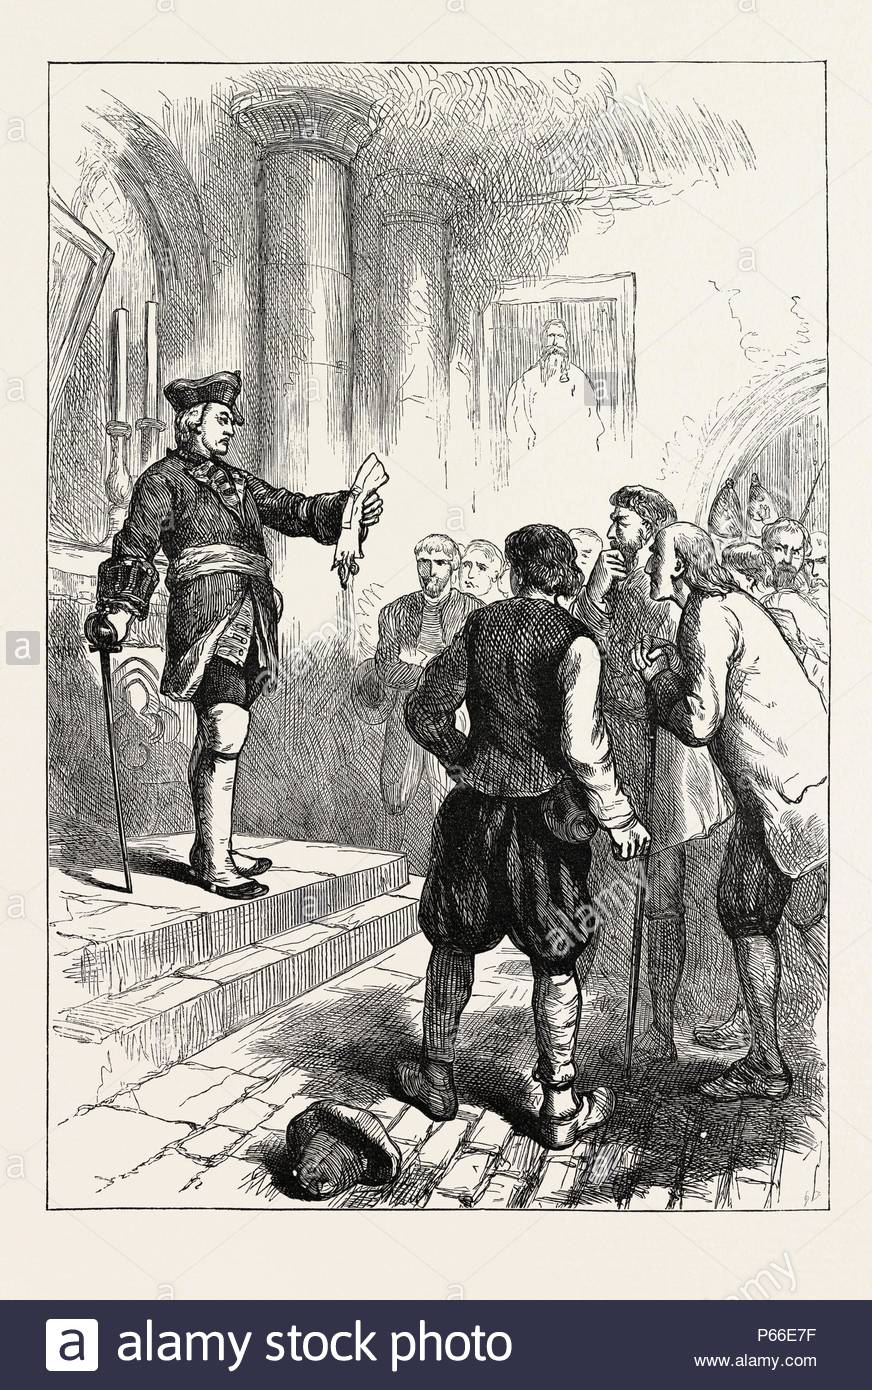 WINSLOW READING THE ROYAL PROCLAMATION, US, USA, 1870s engraving. - Stock Image